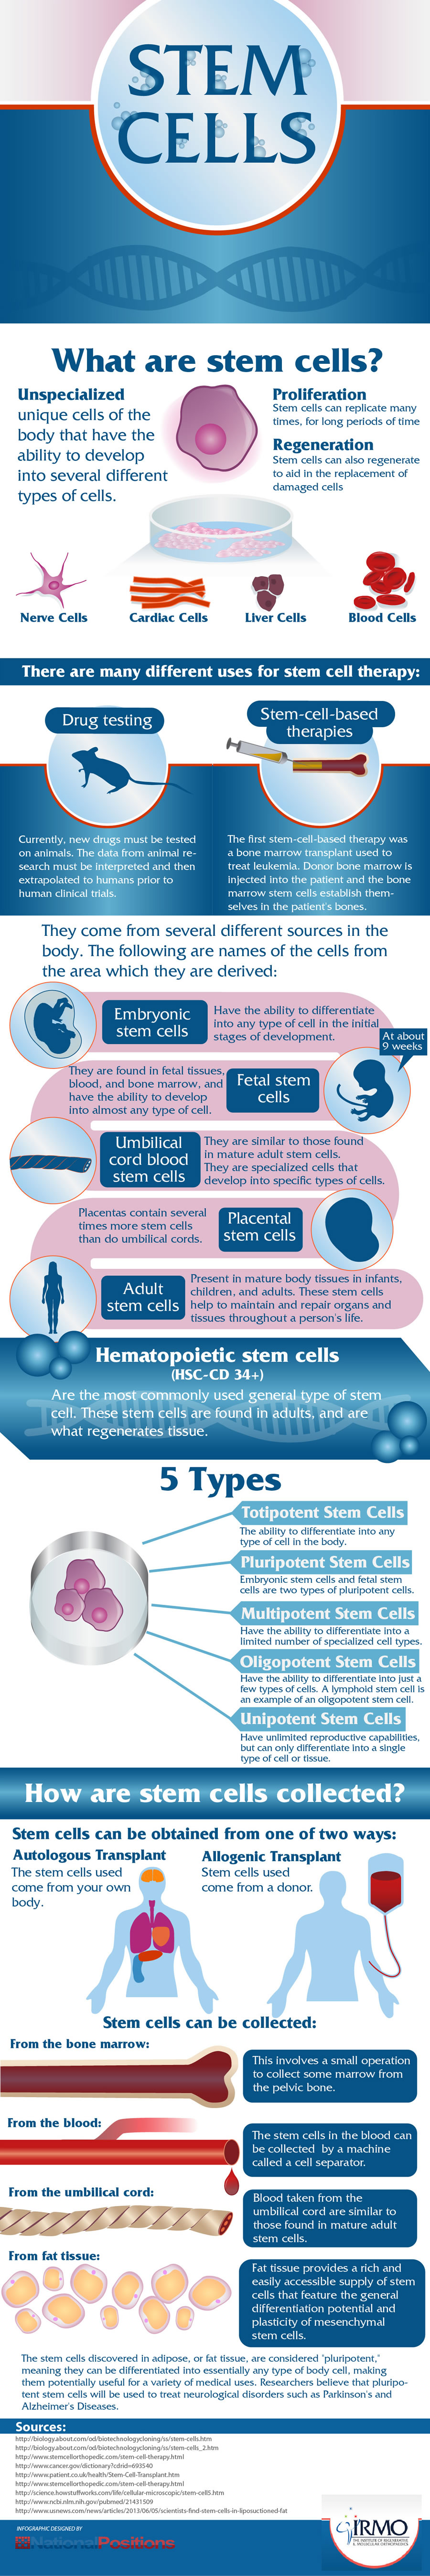 Stem Cell Research Explained